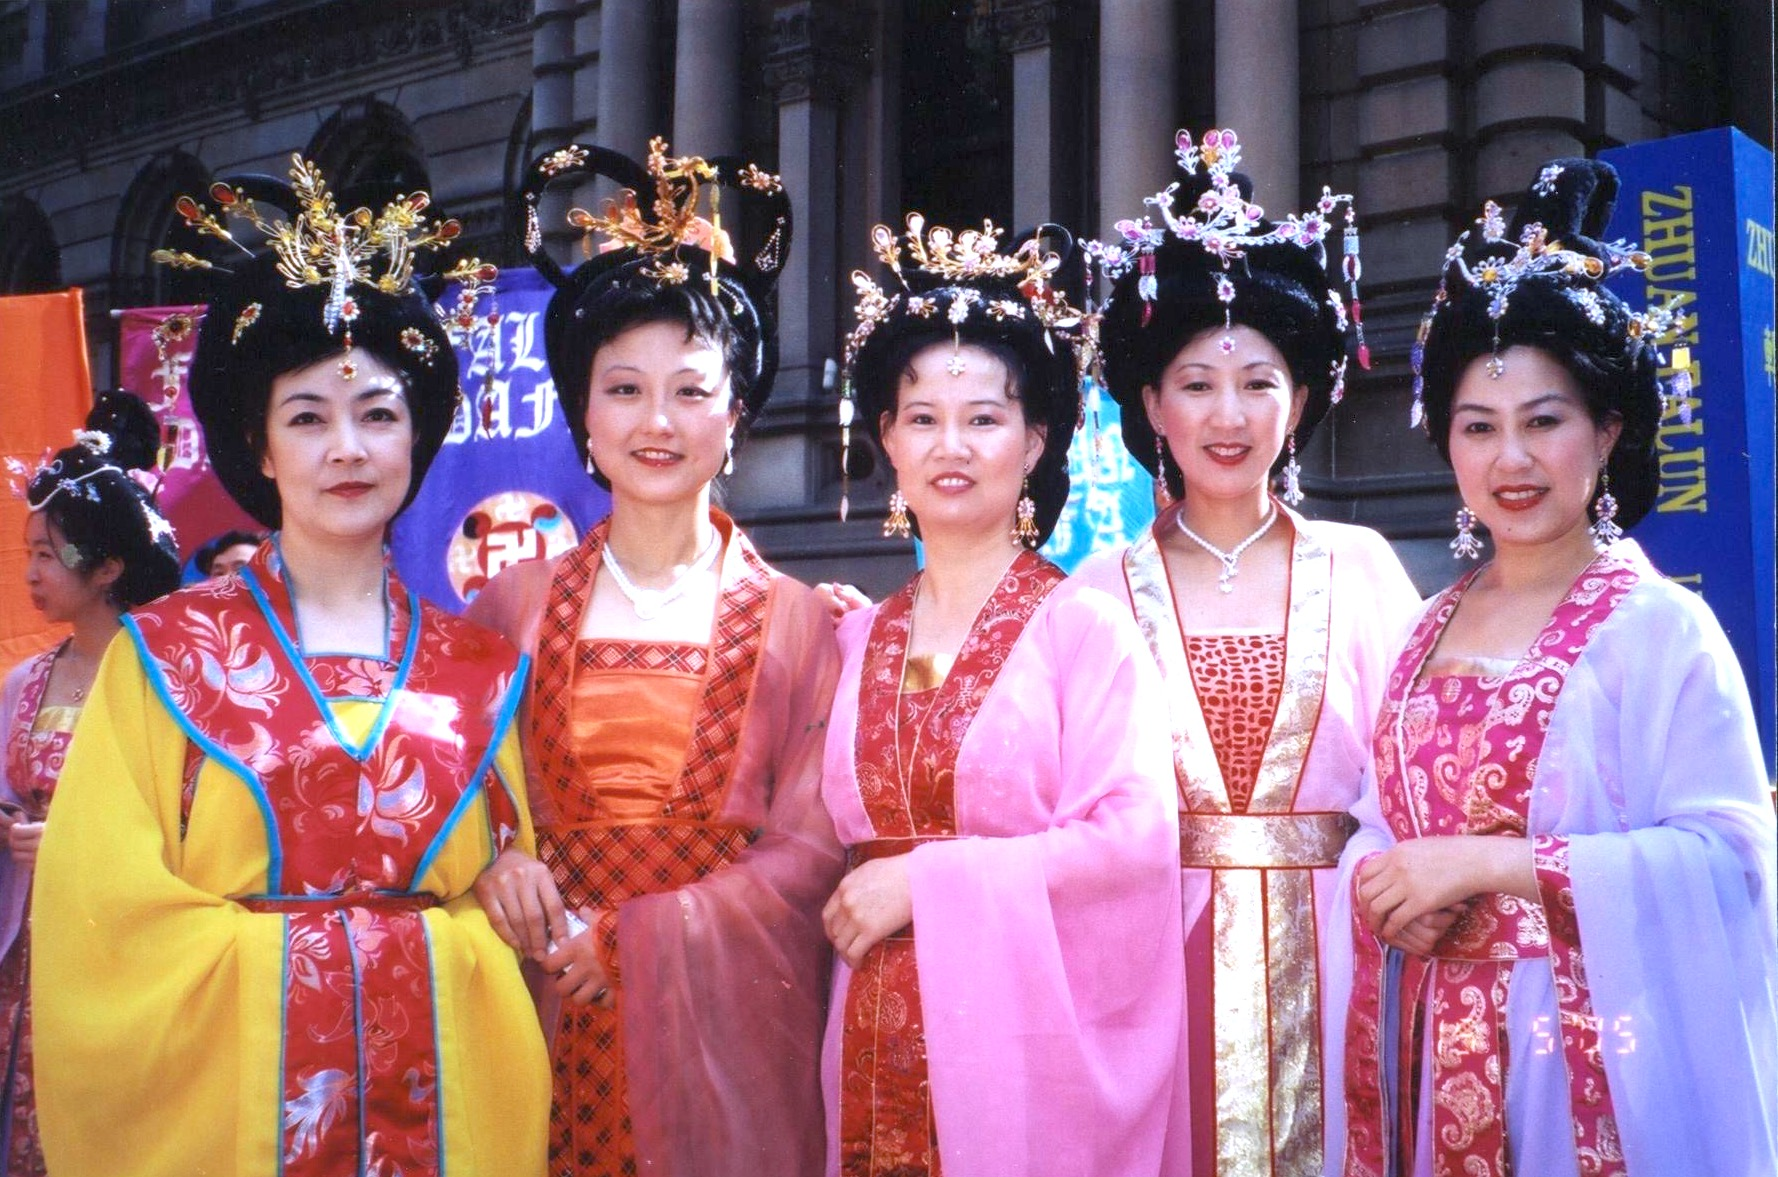 Jennifer and fellow Falun Gong practitioners at a parade in Sydney in 2005. 曾錚及幾位悉尼法輪功學員參加市區大遊行。攝於2005年。